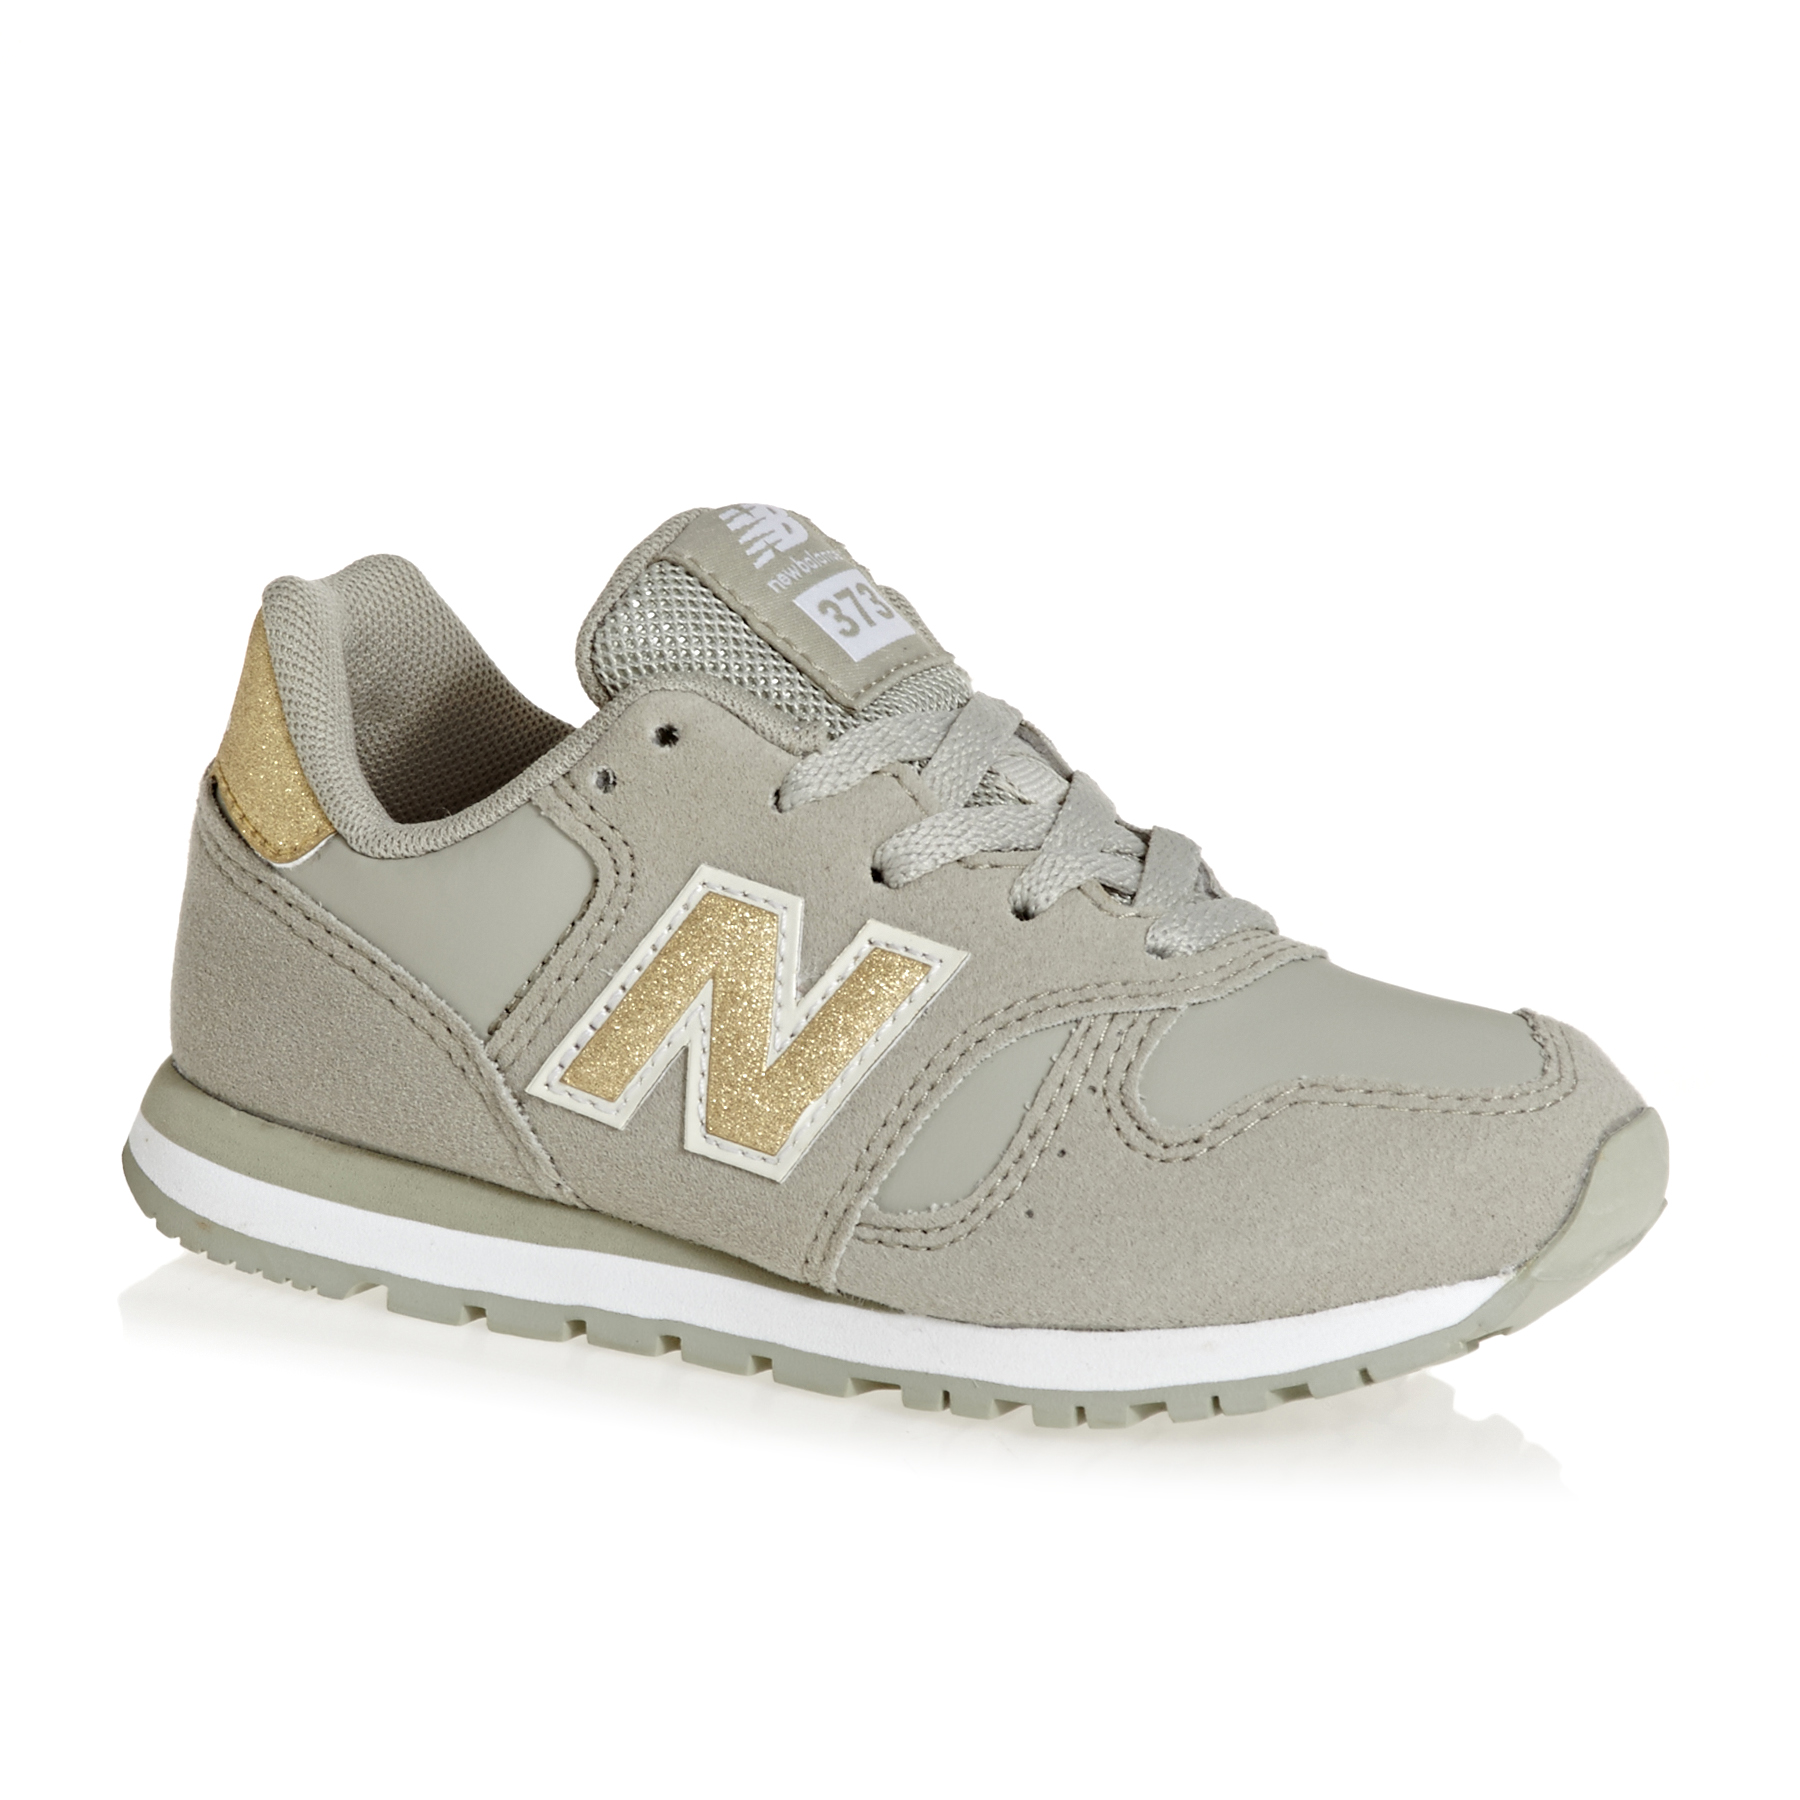 New Balance Shoes, Trainers & Bags Surfdome Ireland